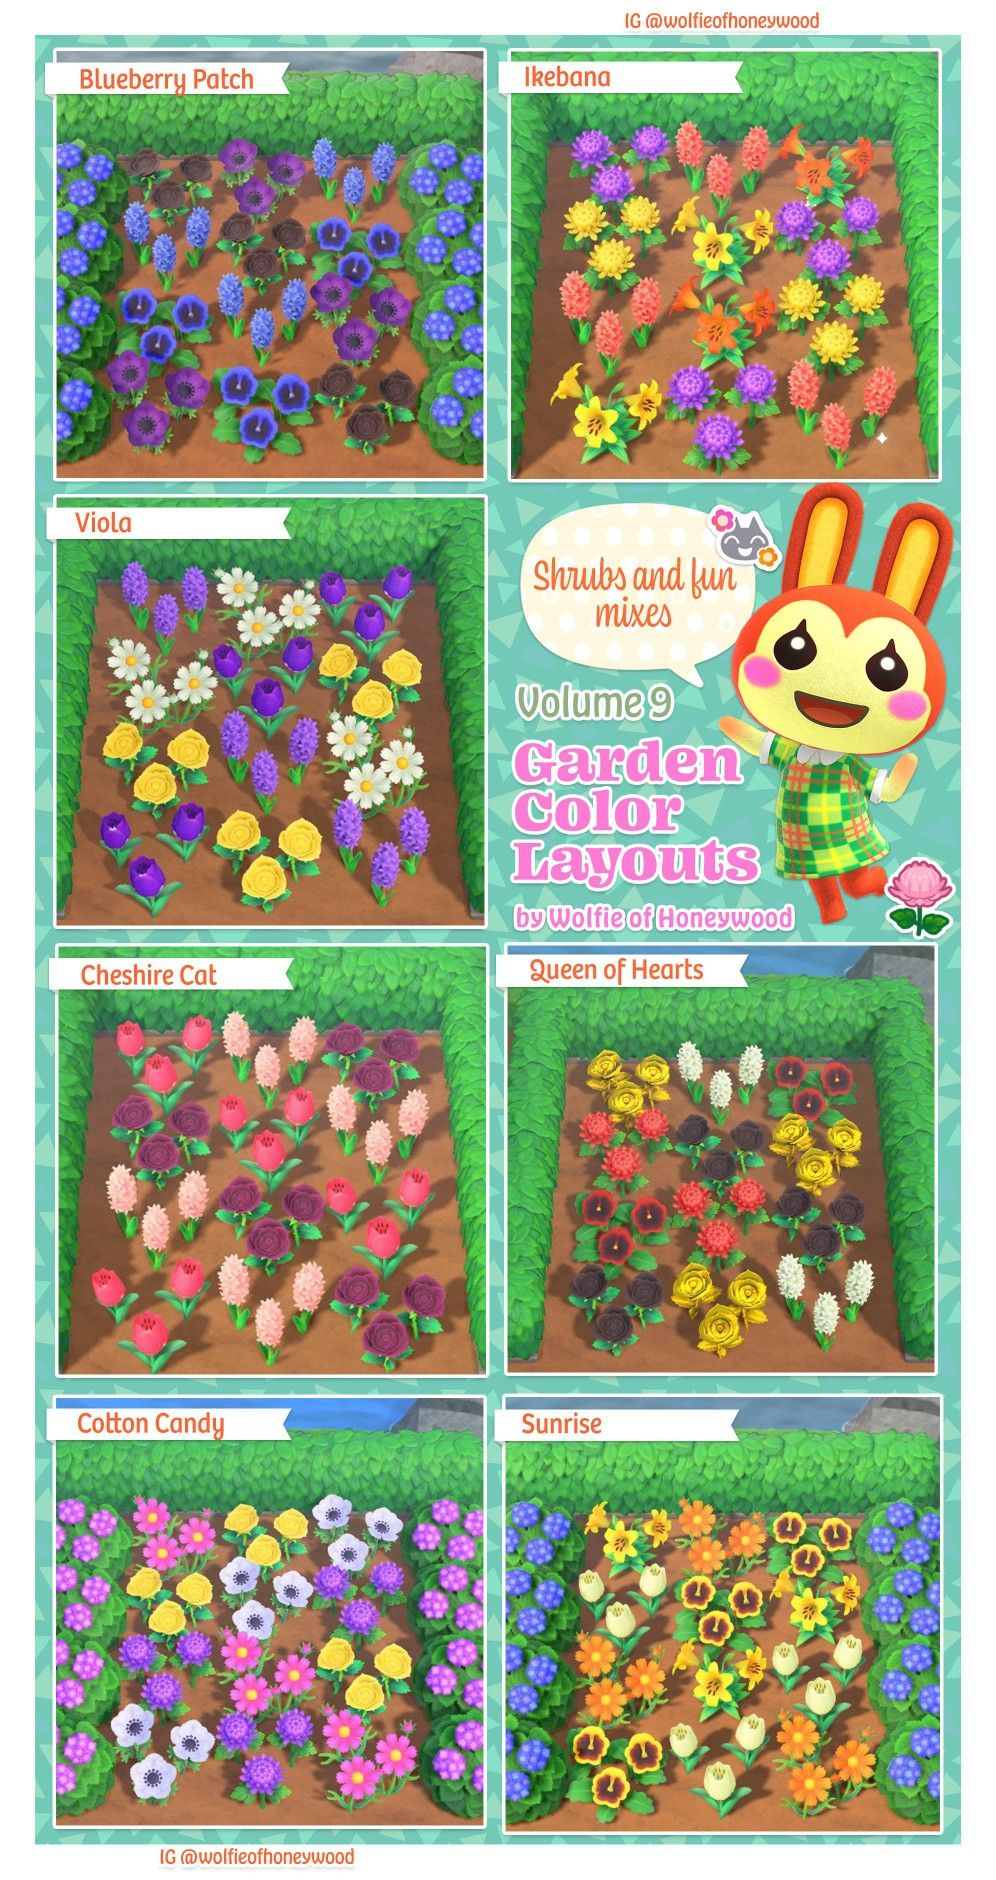 Pin by Ashia Mar on ACNH in 2020 Animal crossing, New